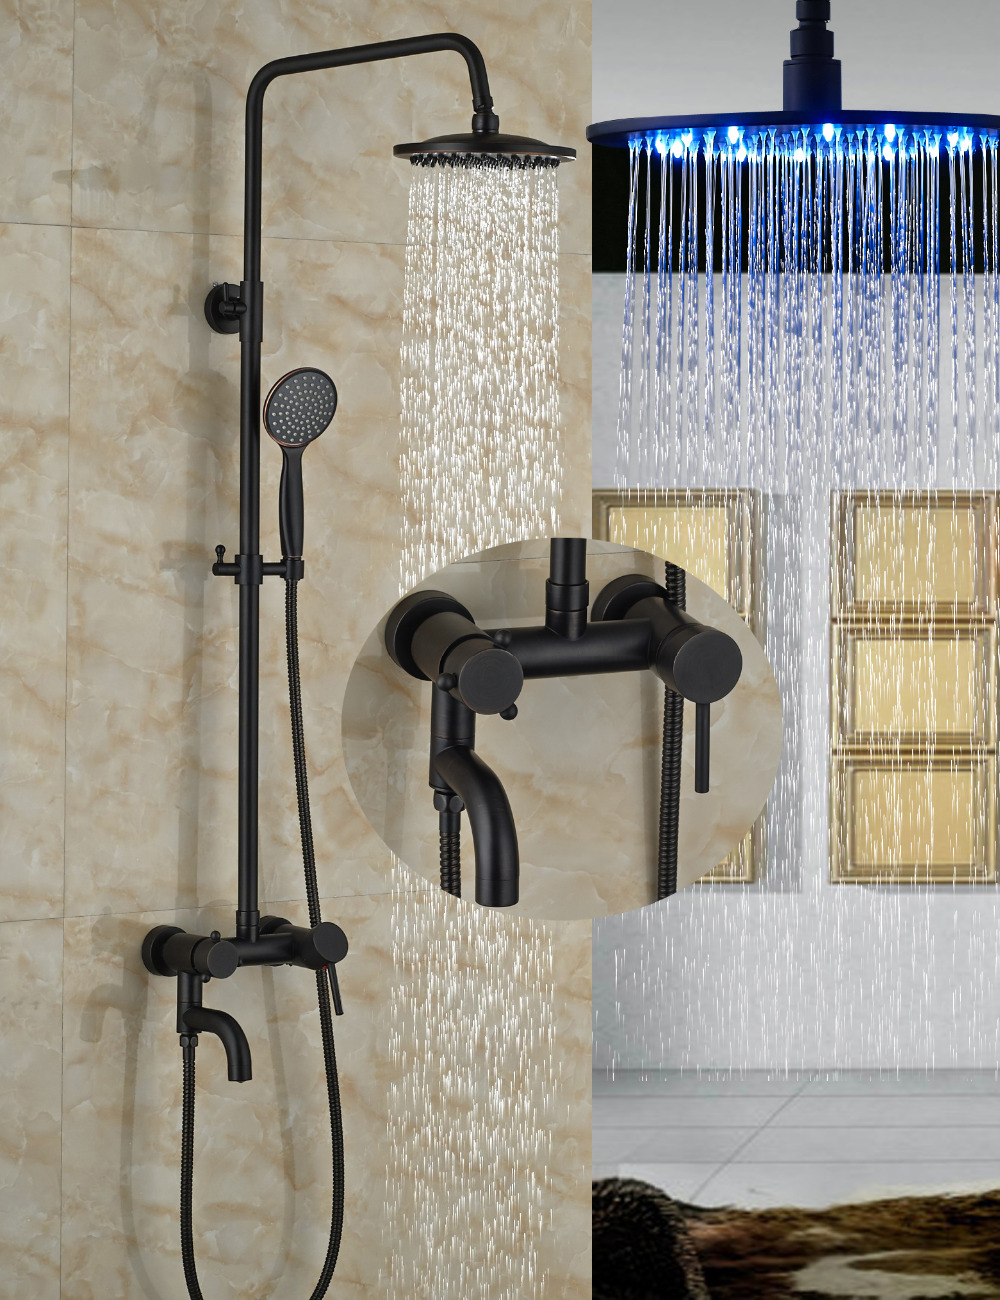 Wholesale And Retail 8 Round Rain Shower Head Oil Rubbed Bronze Wall Mouted Shower Mixer Tap Tub Spout W/ Hand Shower